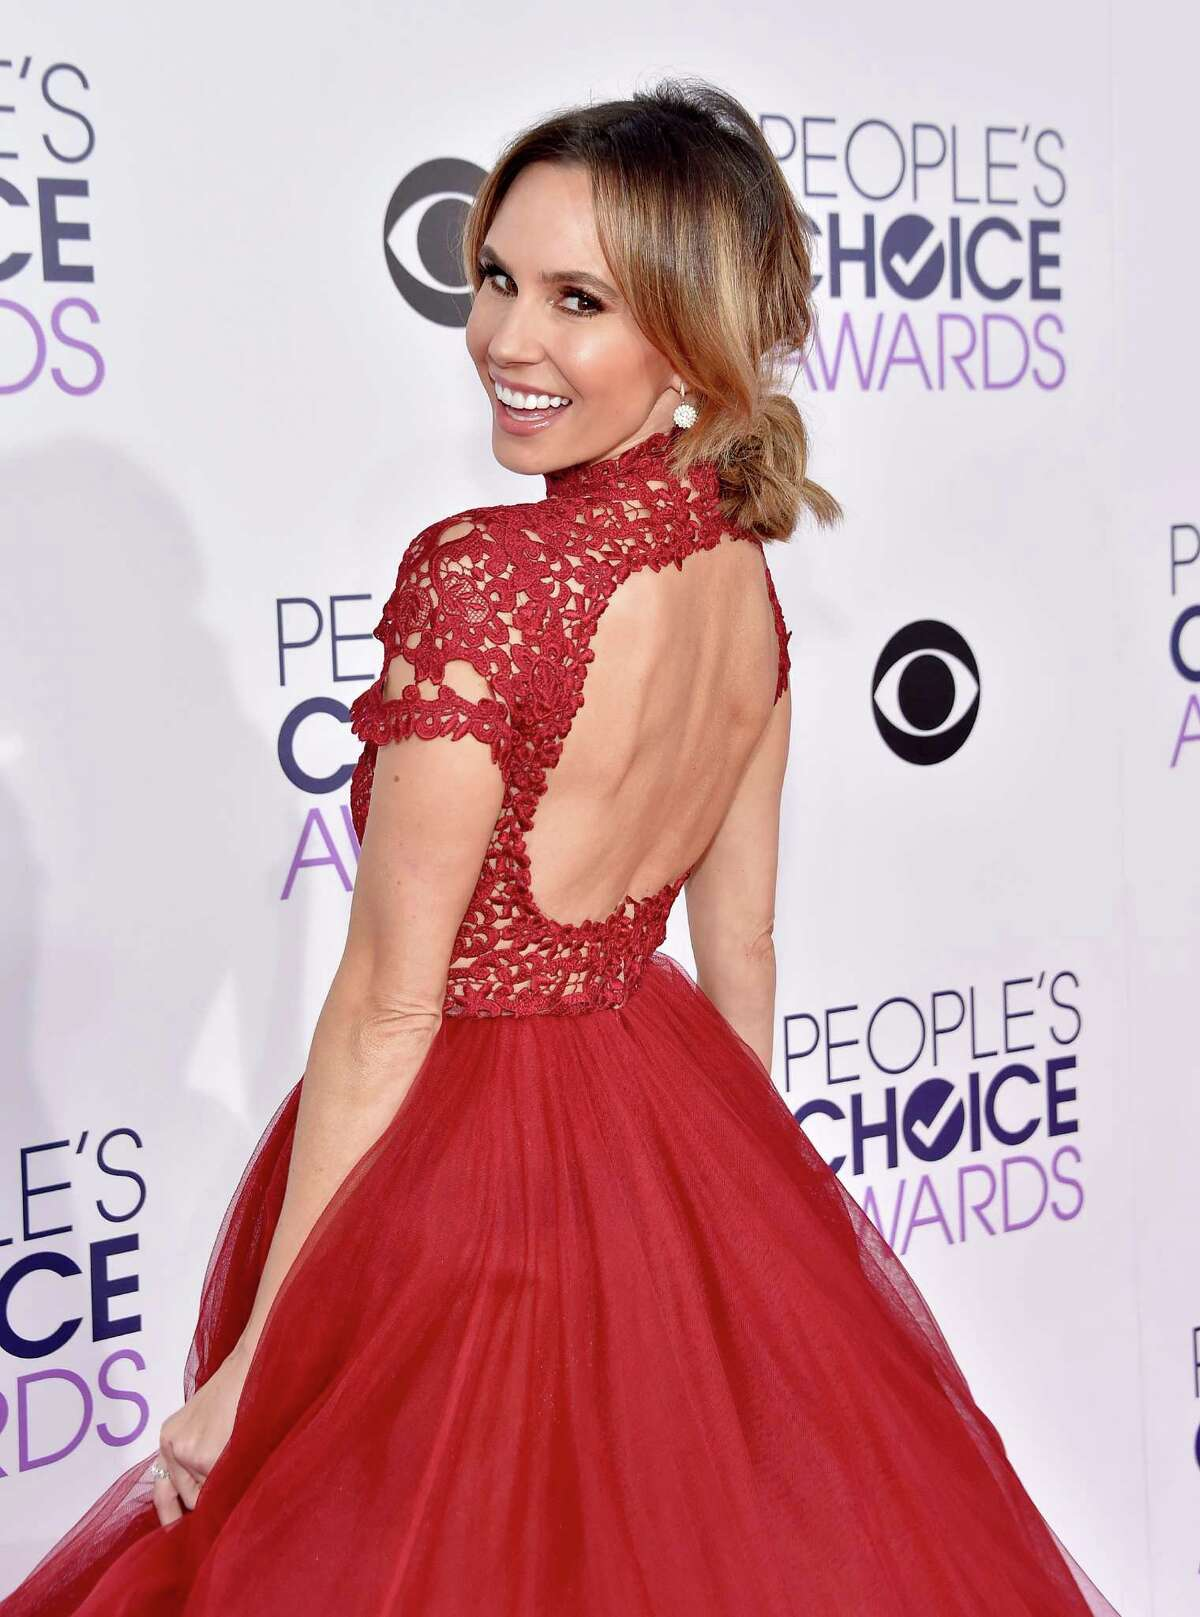 And we fell in love with TV personality Keltie Knight's dress. The open back gives the otherwise mom dress a sexy touch.